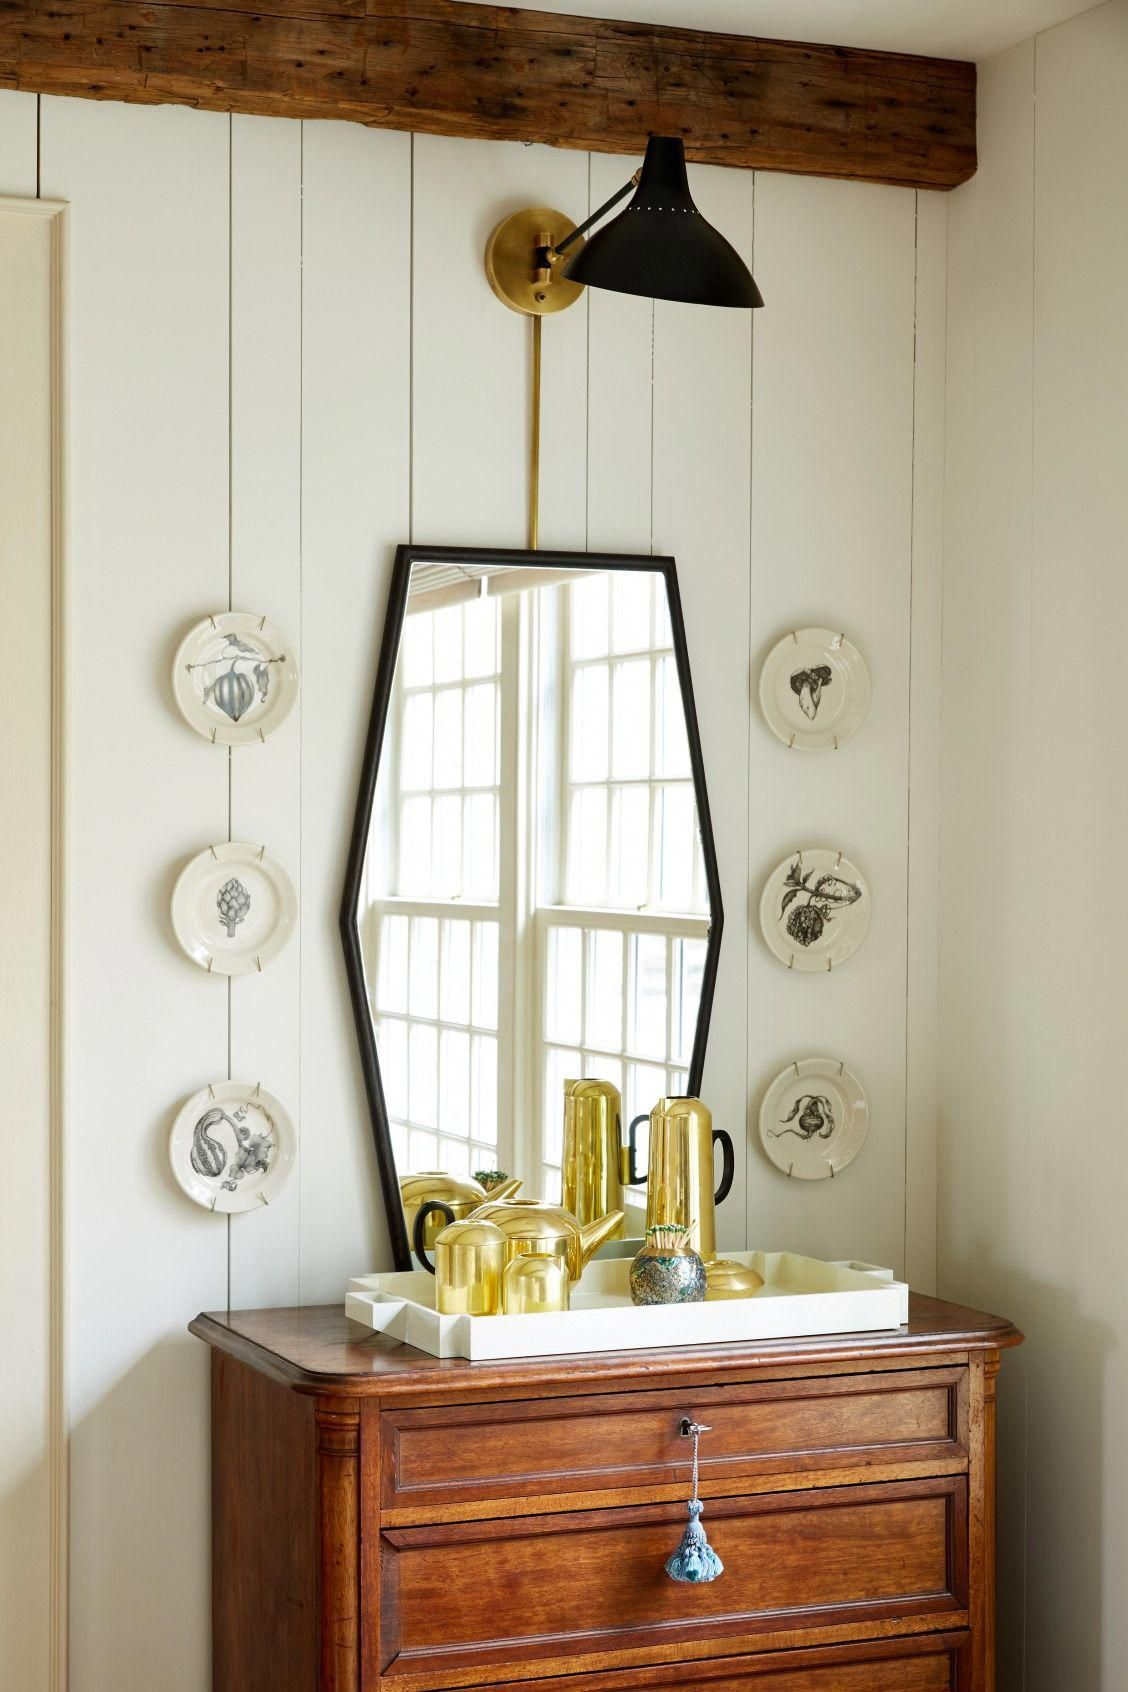 Love this eclectic mix of modern and traditional